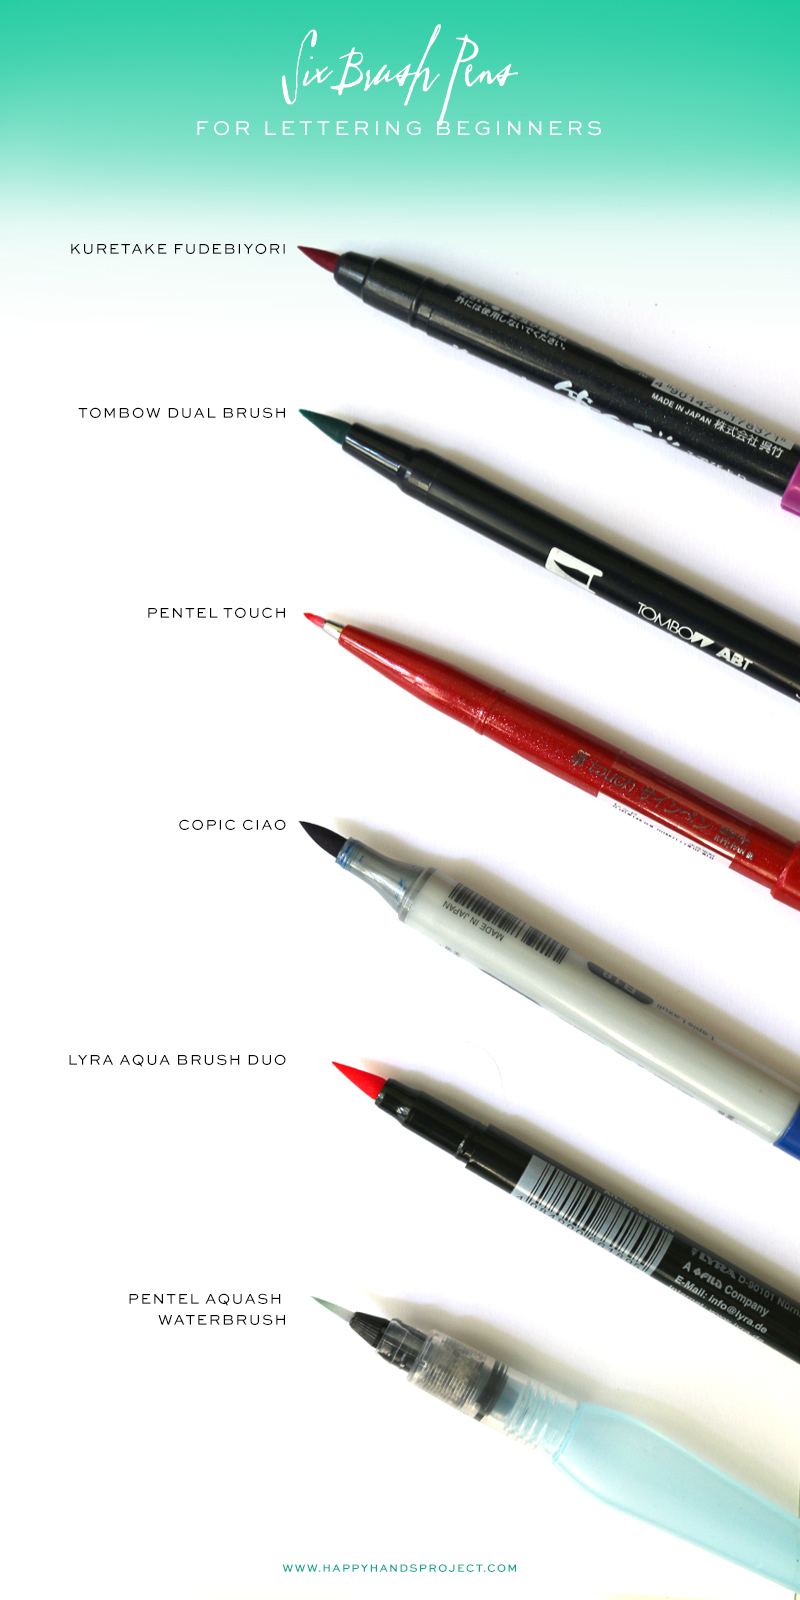 Brush Pens For Beginners via Happy Hands Project